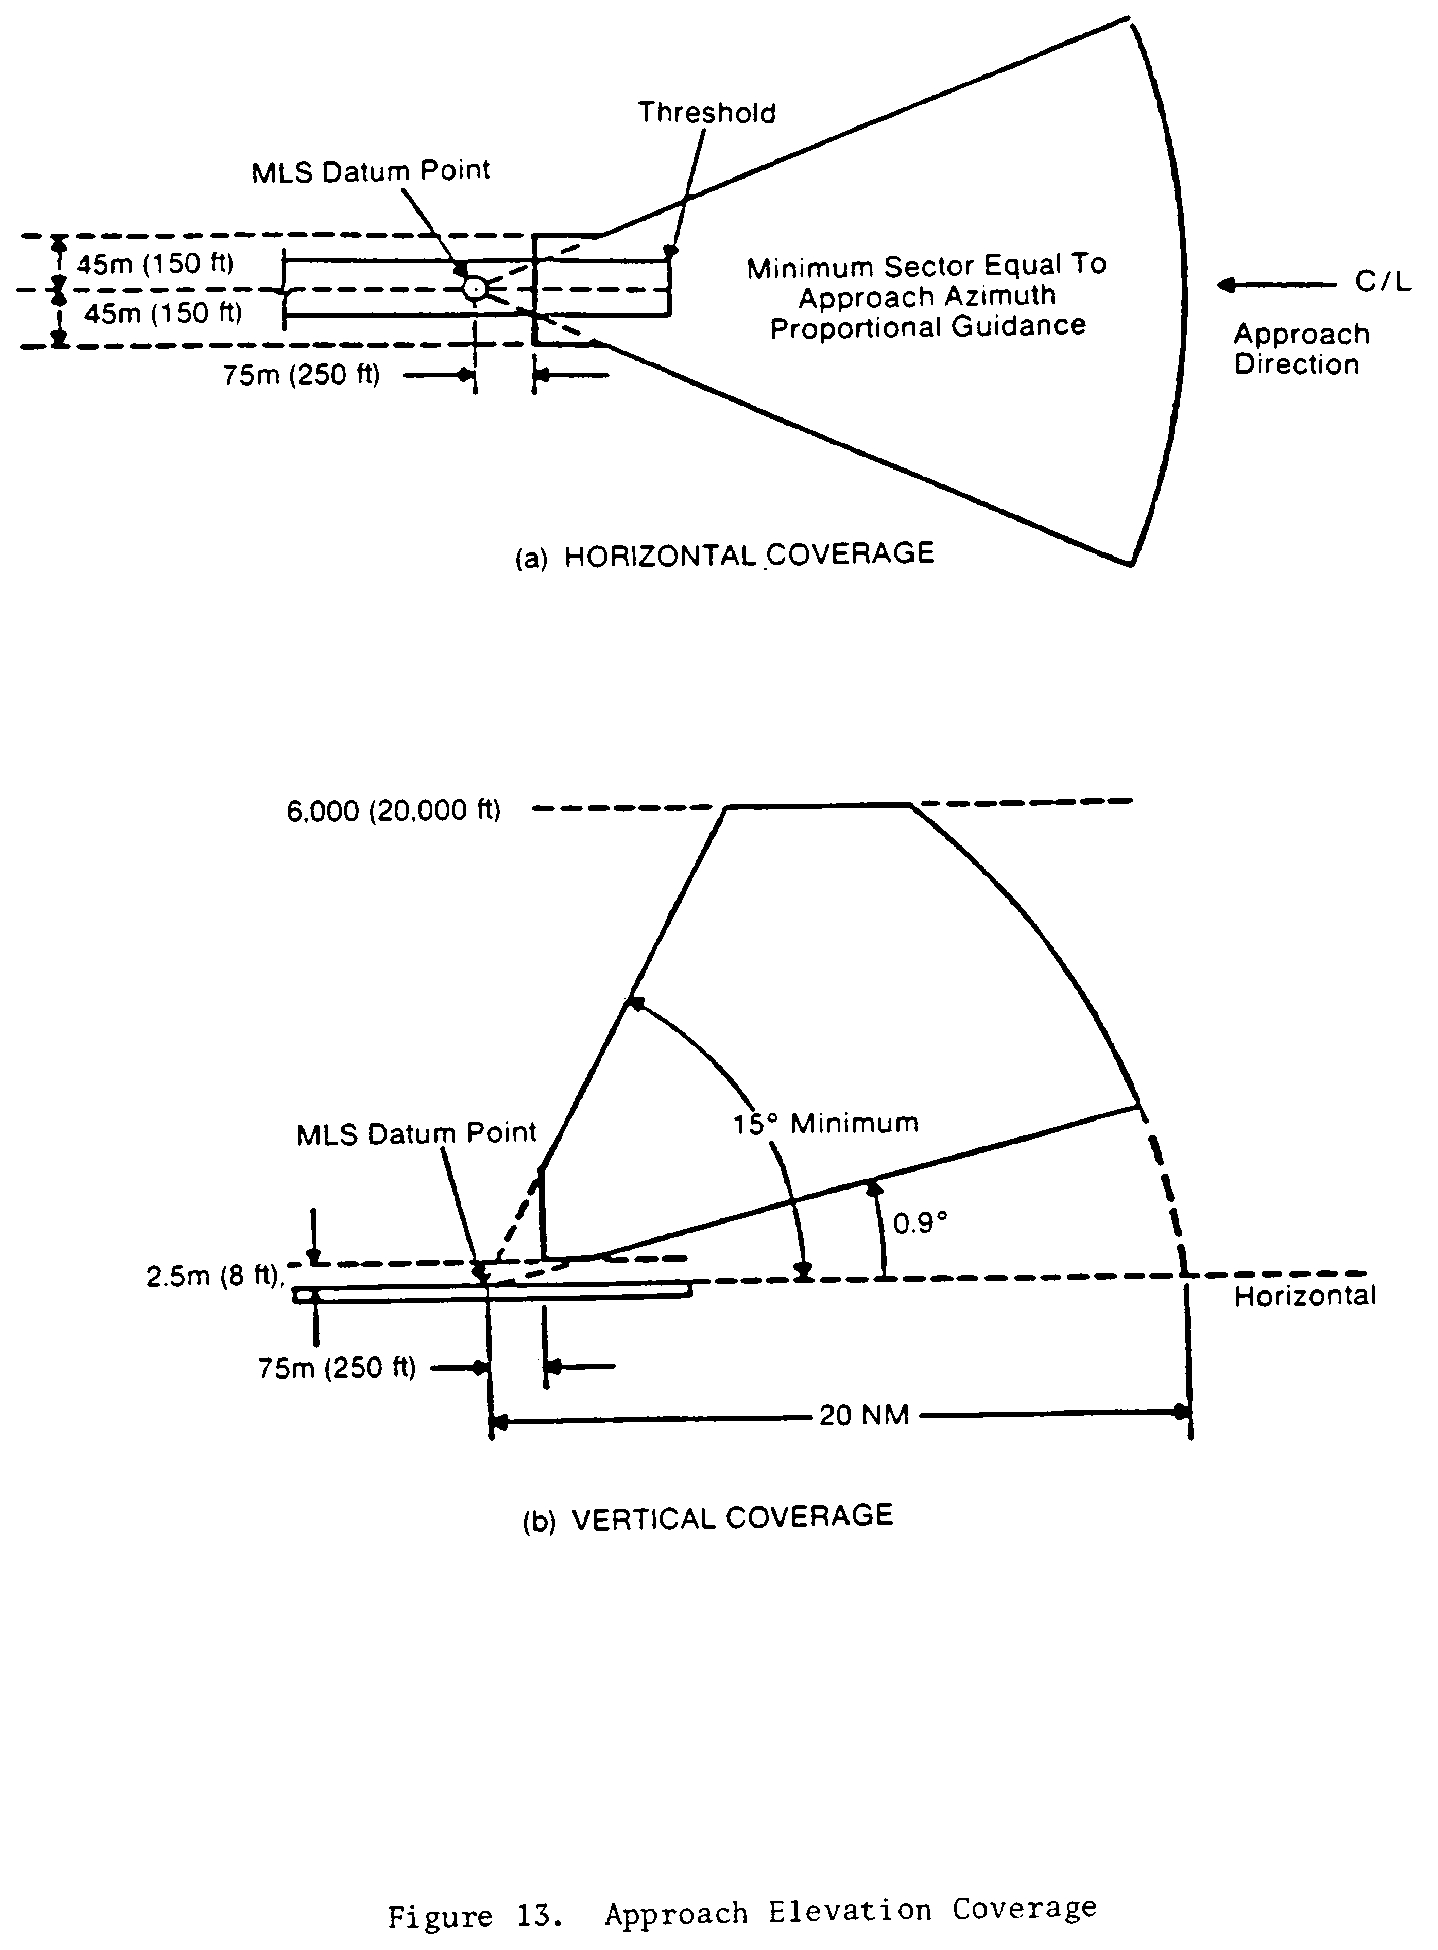 Graphic of (iii) A conical surface originating at the datum point and inclined at 15.0 degrees above the horizontal up to a height of 6000 meters (20,000 feet).